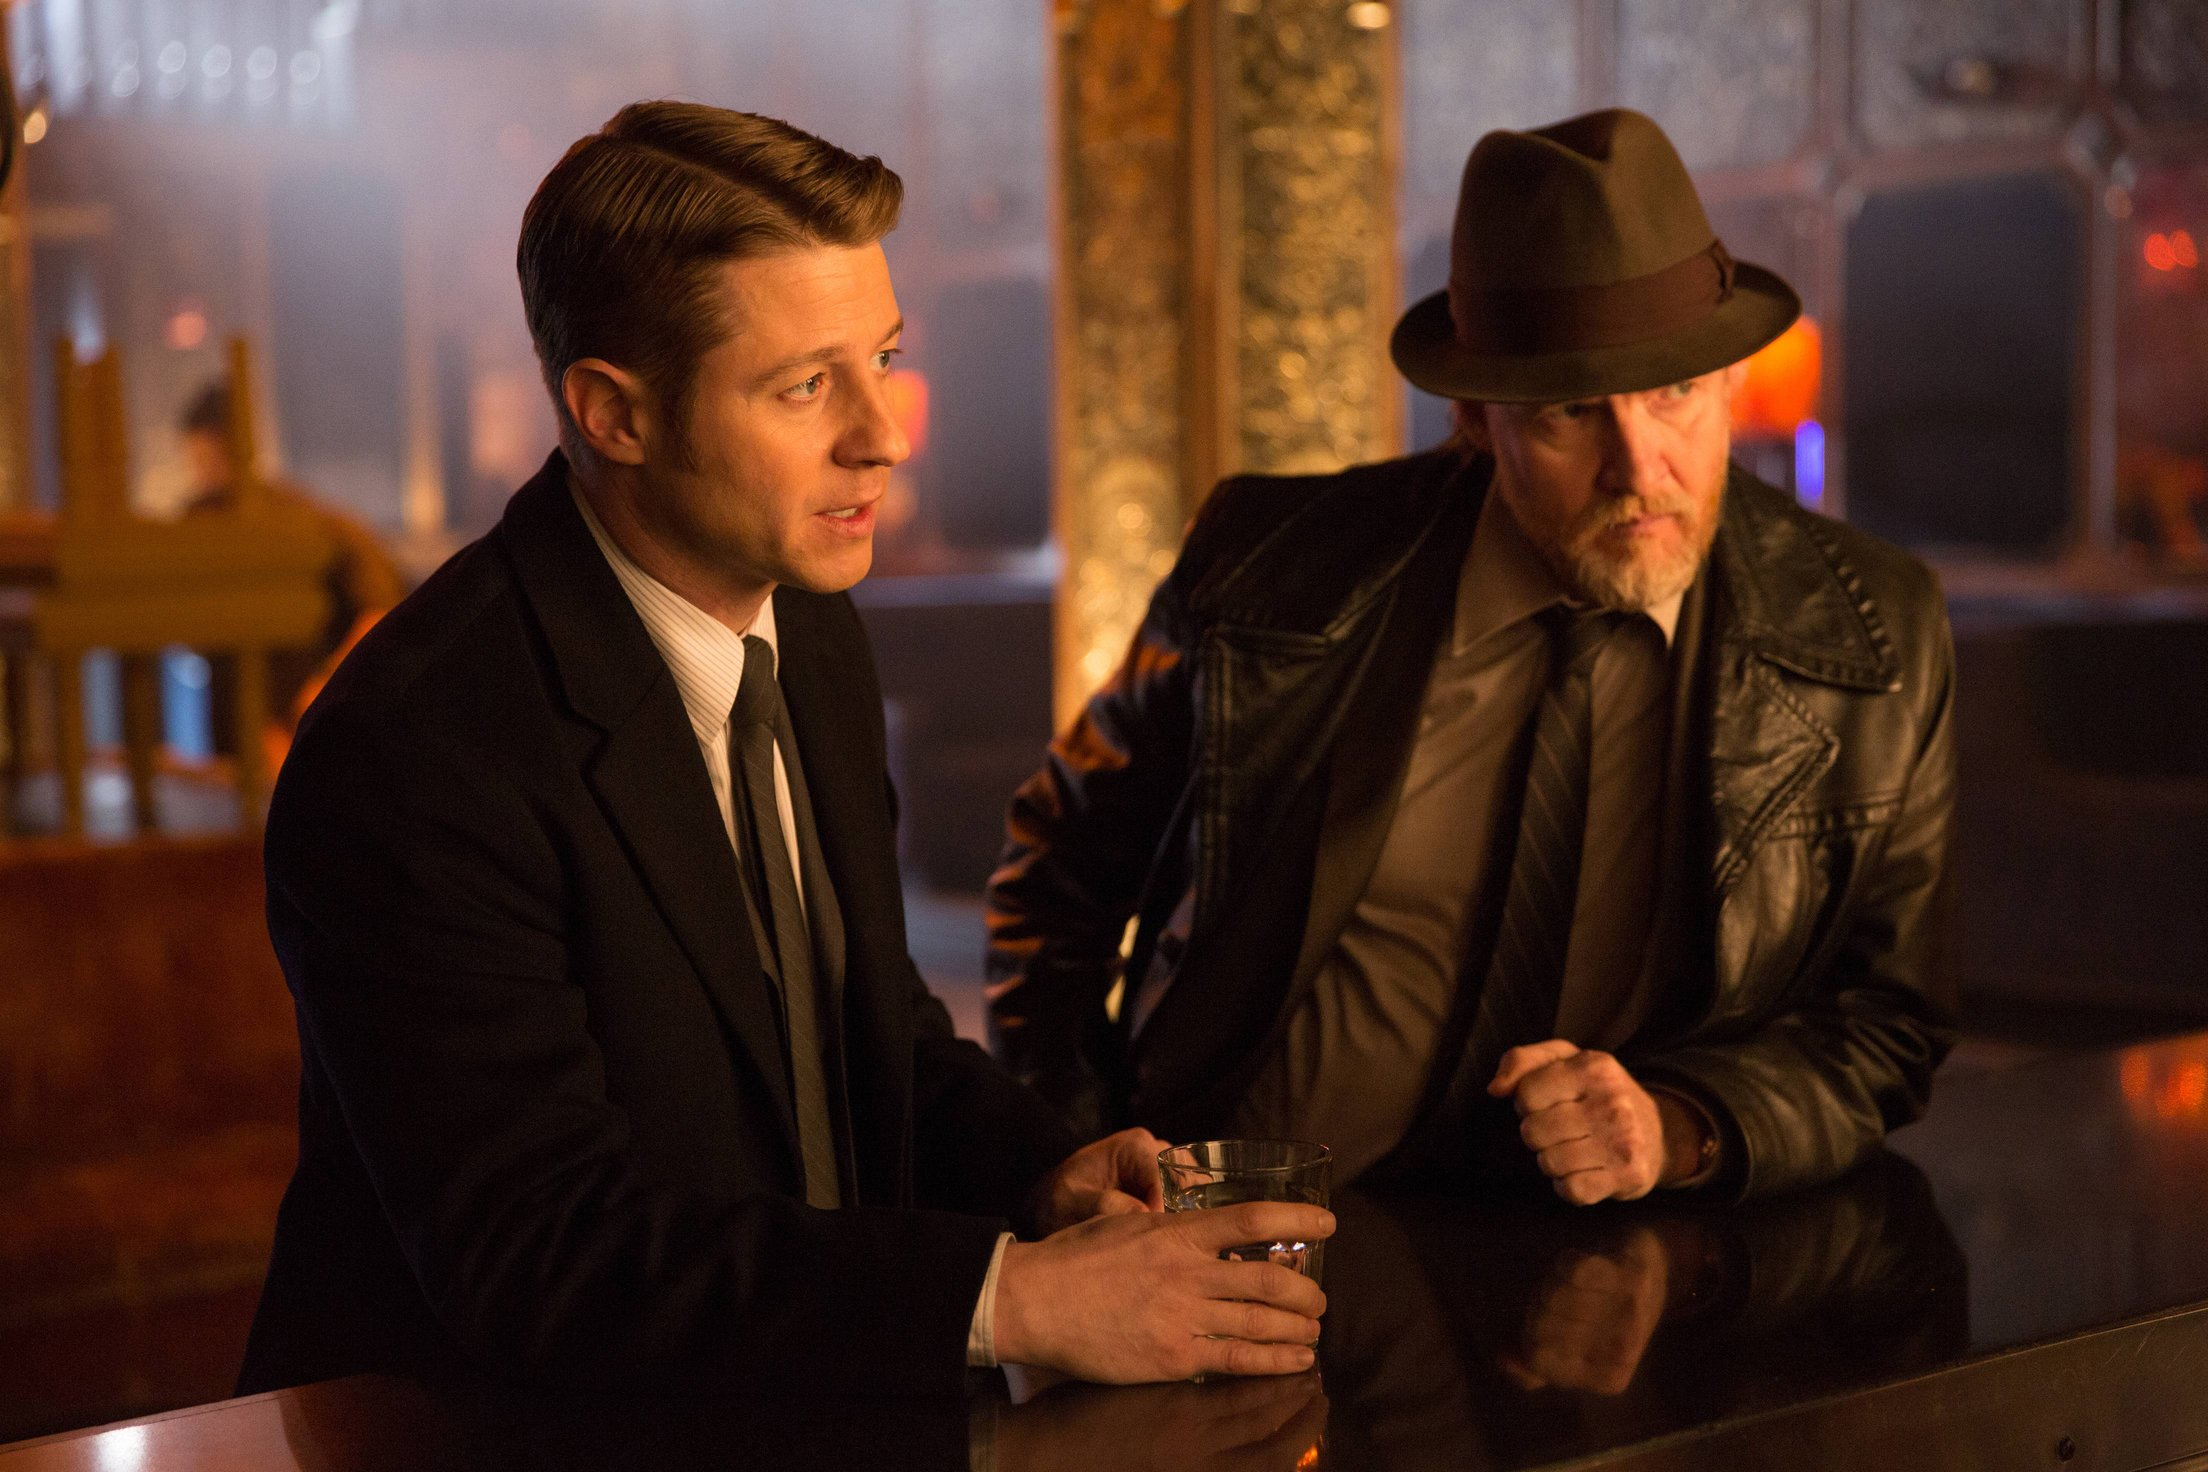 """GOTHAM: Benjamin McKenzie (Gordon, L) and Donal Logue (Bullock, R) question a bartender in the """"Beasts of Prey"""" episode of GOTHAM airing Monday, April 13 (8:00-9:00 PM ET/PT) on FOX. ©2015 Fox Broadcasting Co. Cr: Jessica Miglio/FOX"""